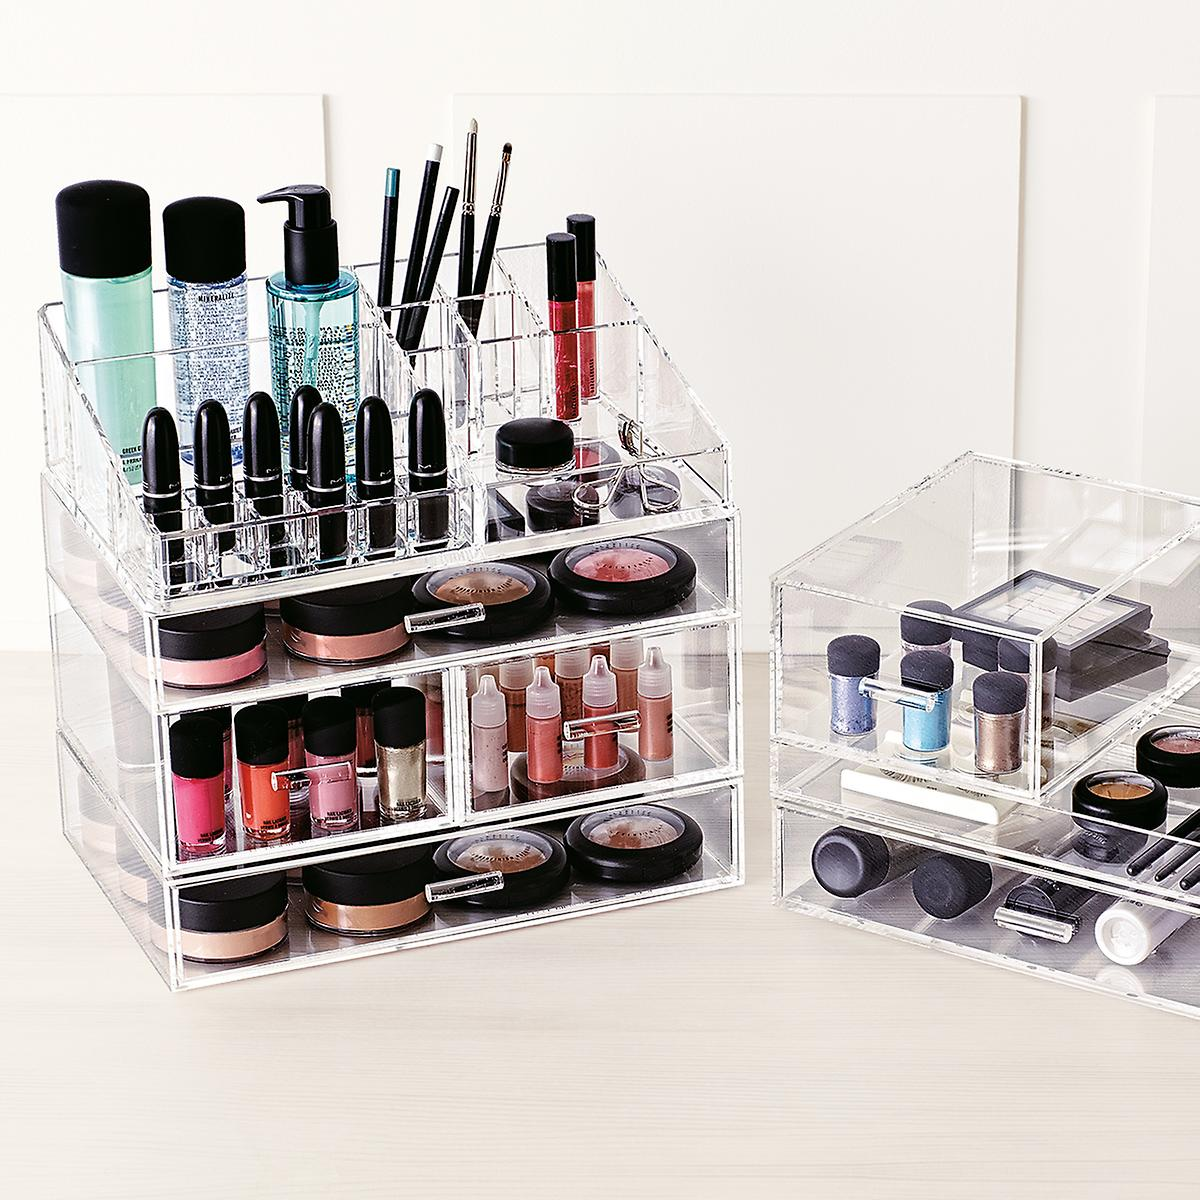 acrylic storage containers for makeup